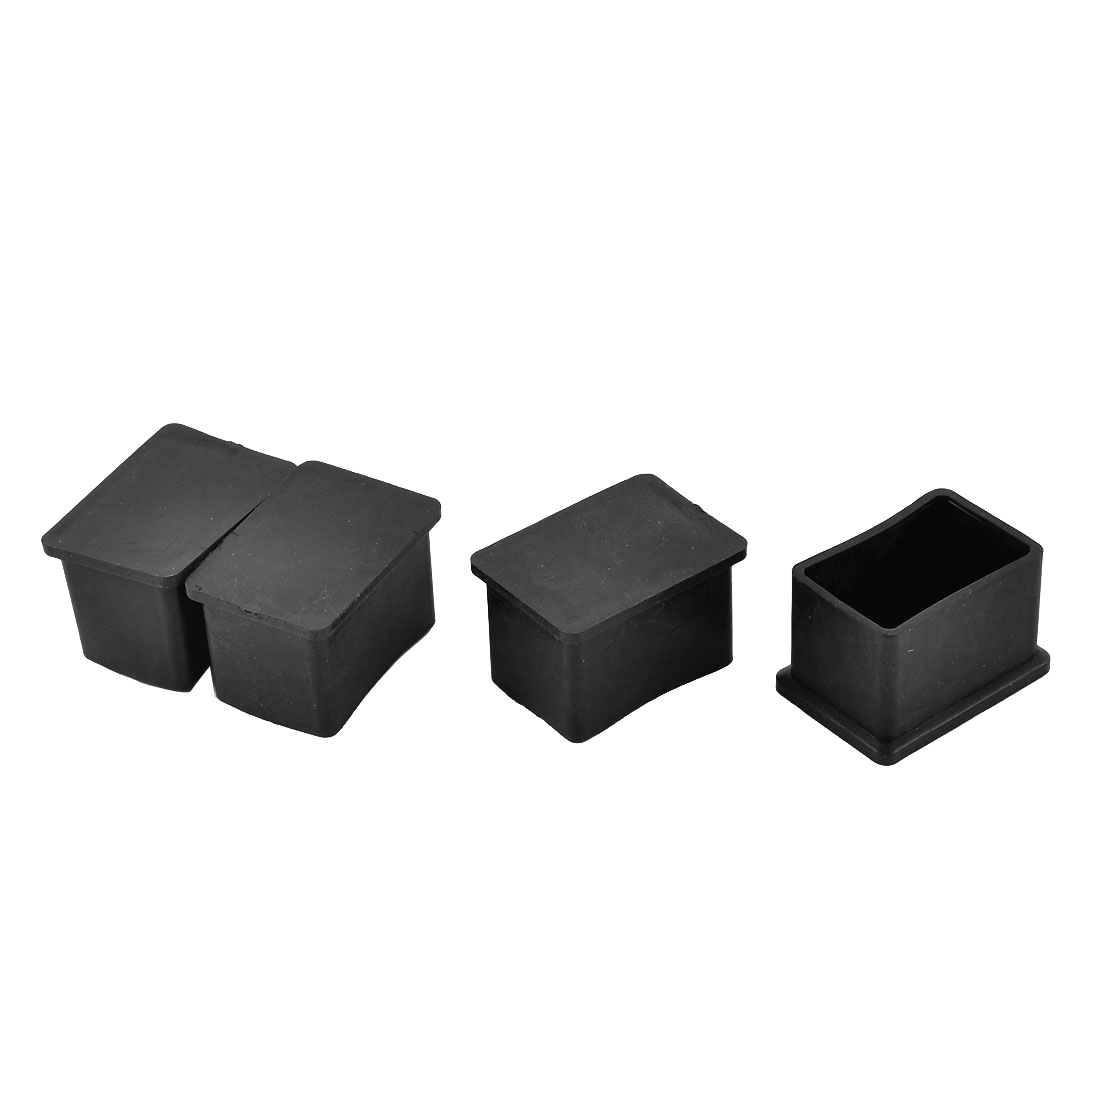 38mm x 25mm Rubber Furniture Table Desk Chair Foot Leg End Cap Cover Black 4pcs